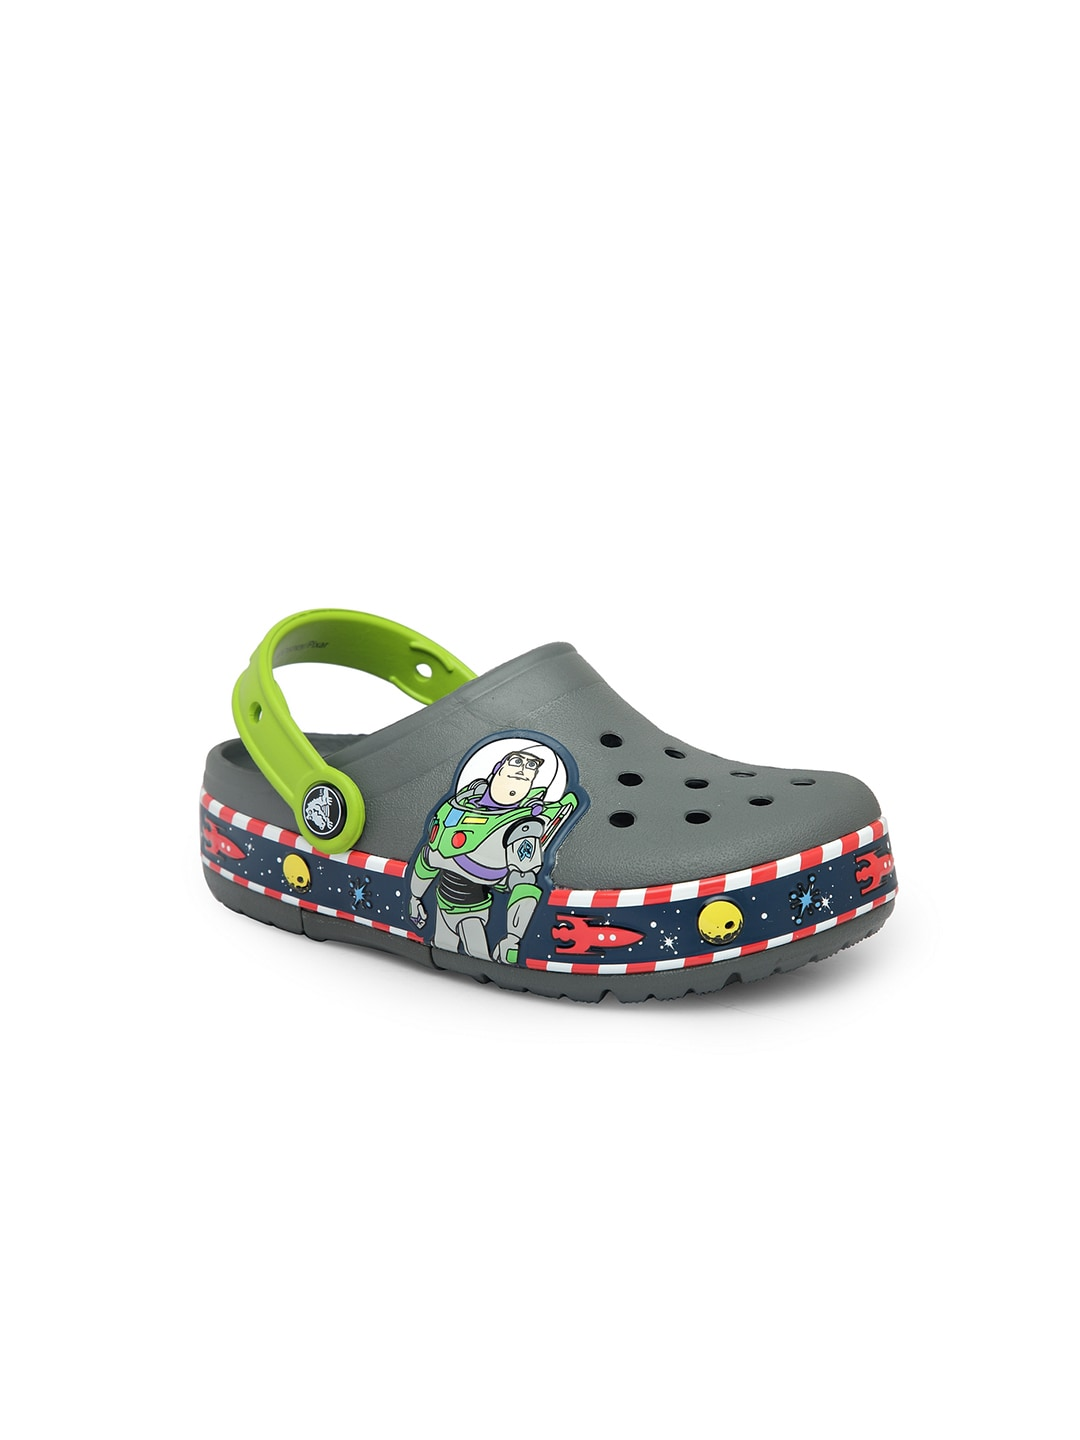 56ab827ae6 Crocs Clogs Sandals - Buy Crocs Clogs Sandals online in India